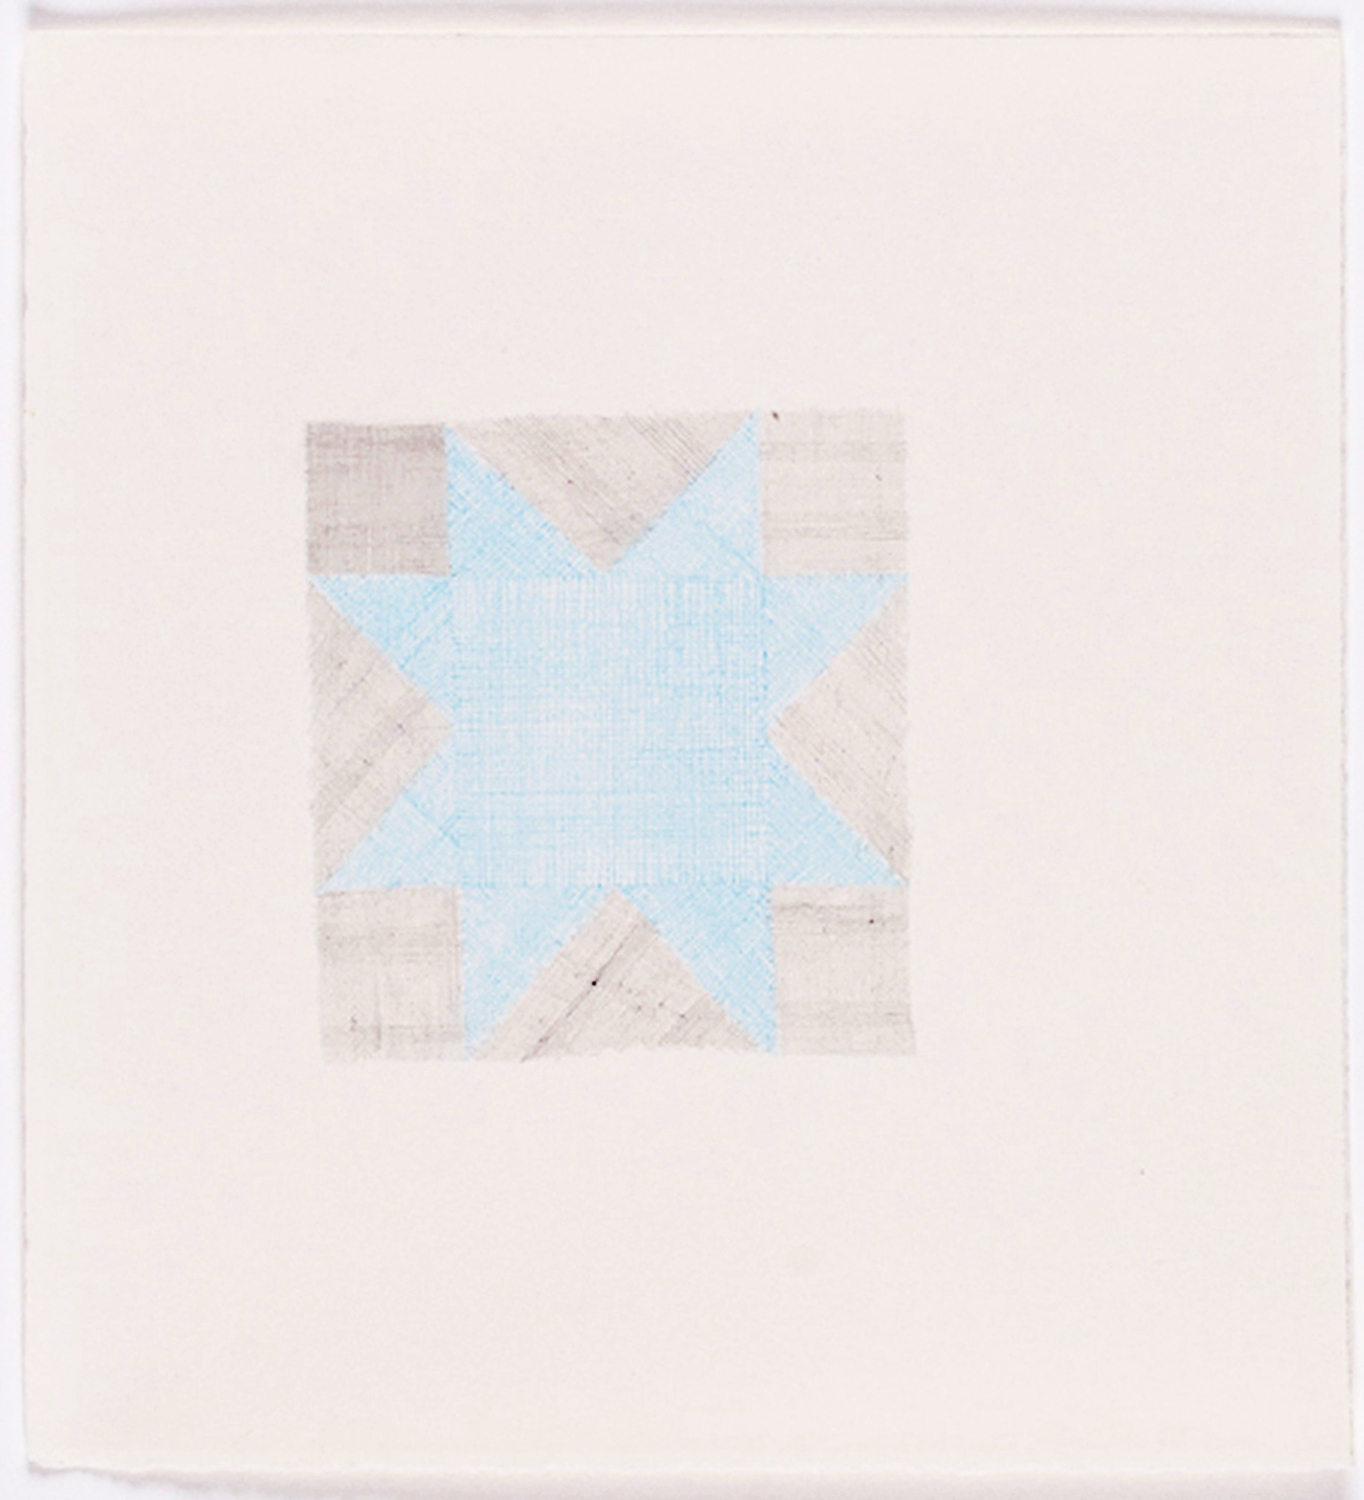 """Quilt Square in Blue. 2009. Color Pencil on Paper. 14"""" x 13"""""""